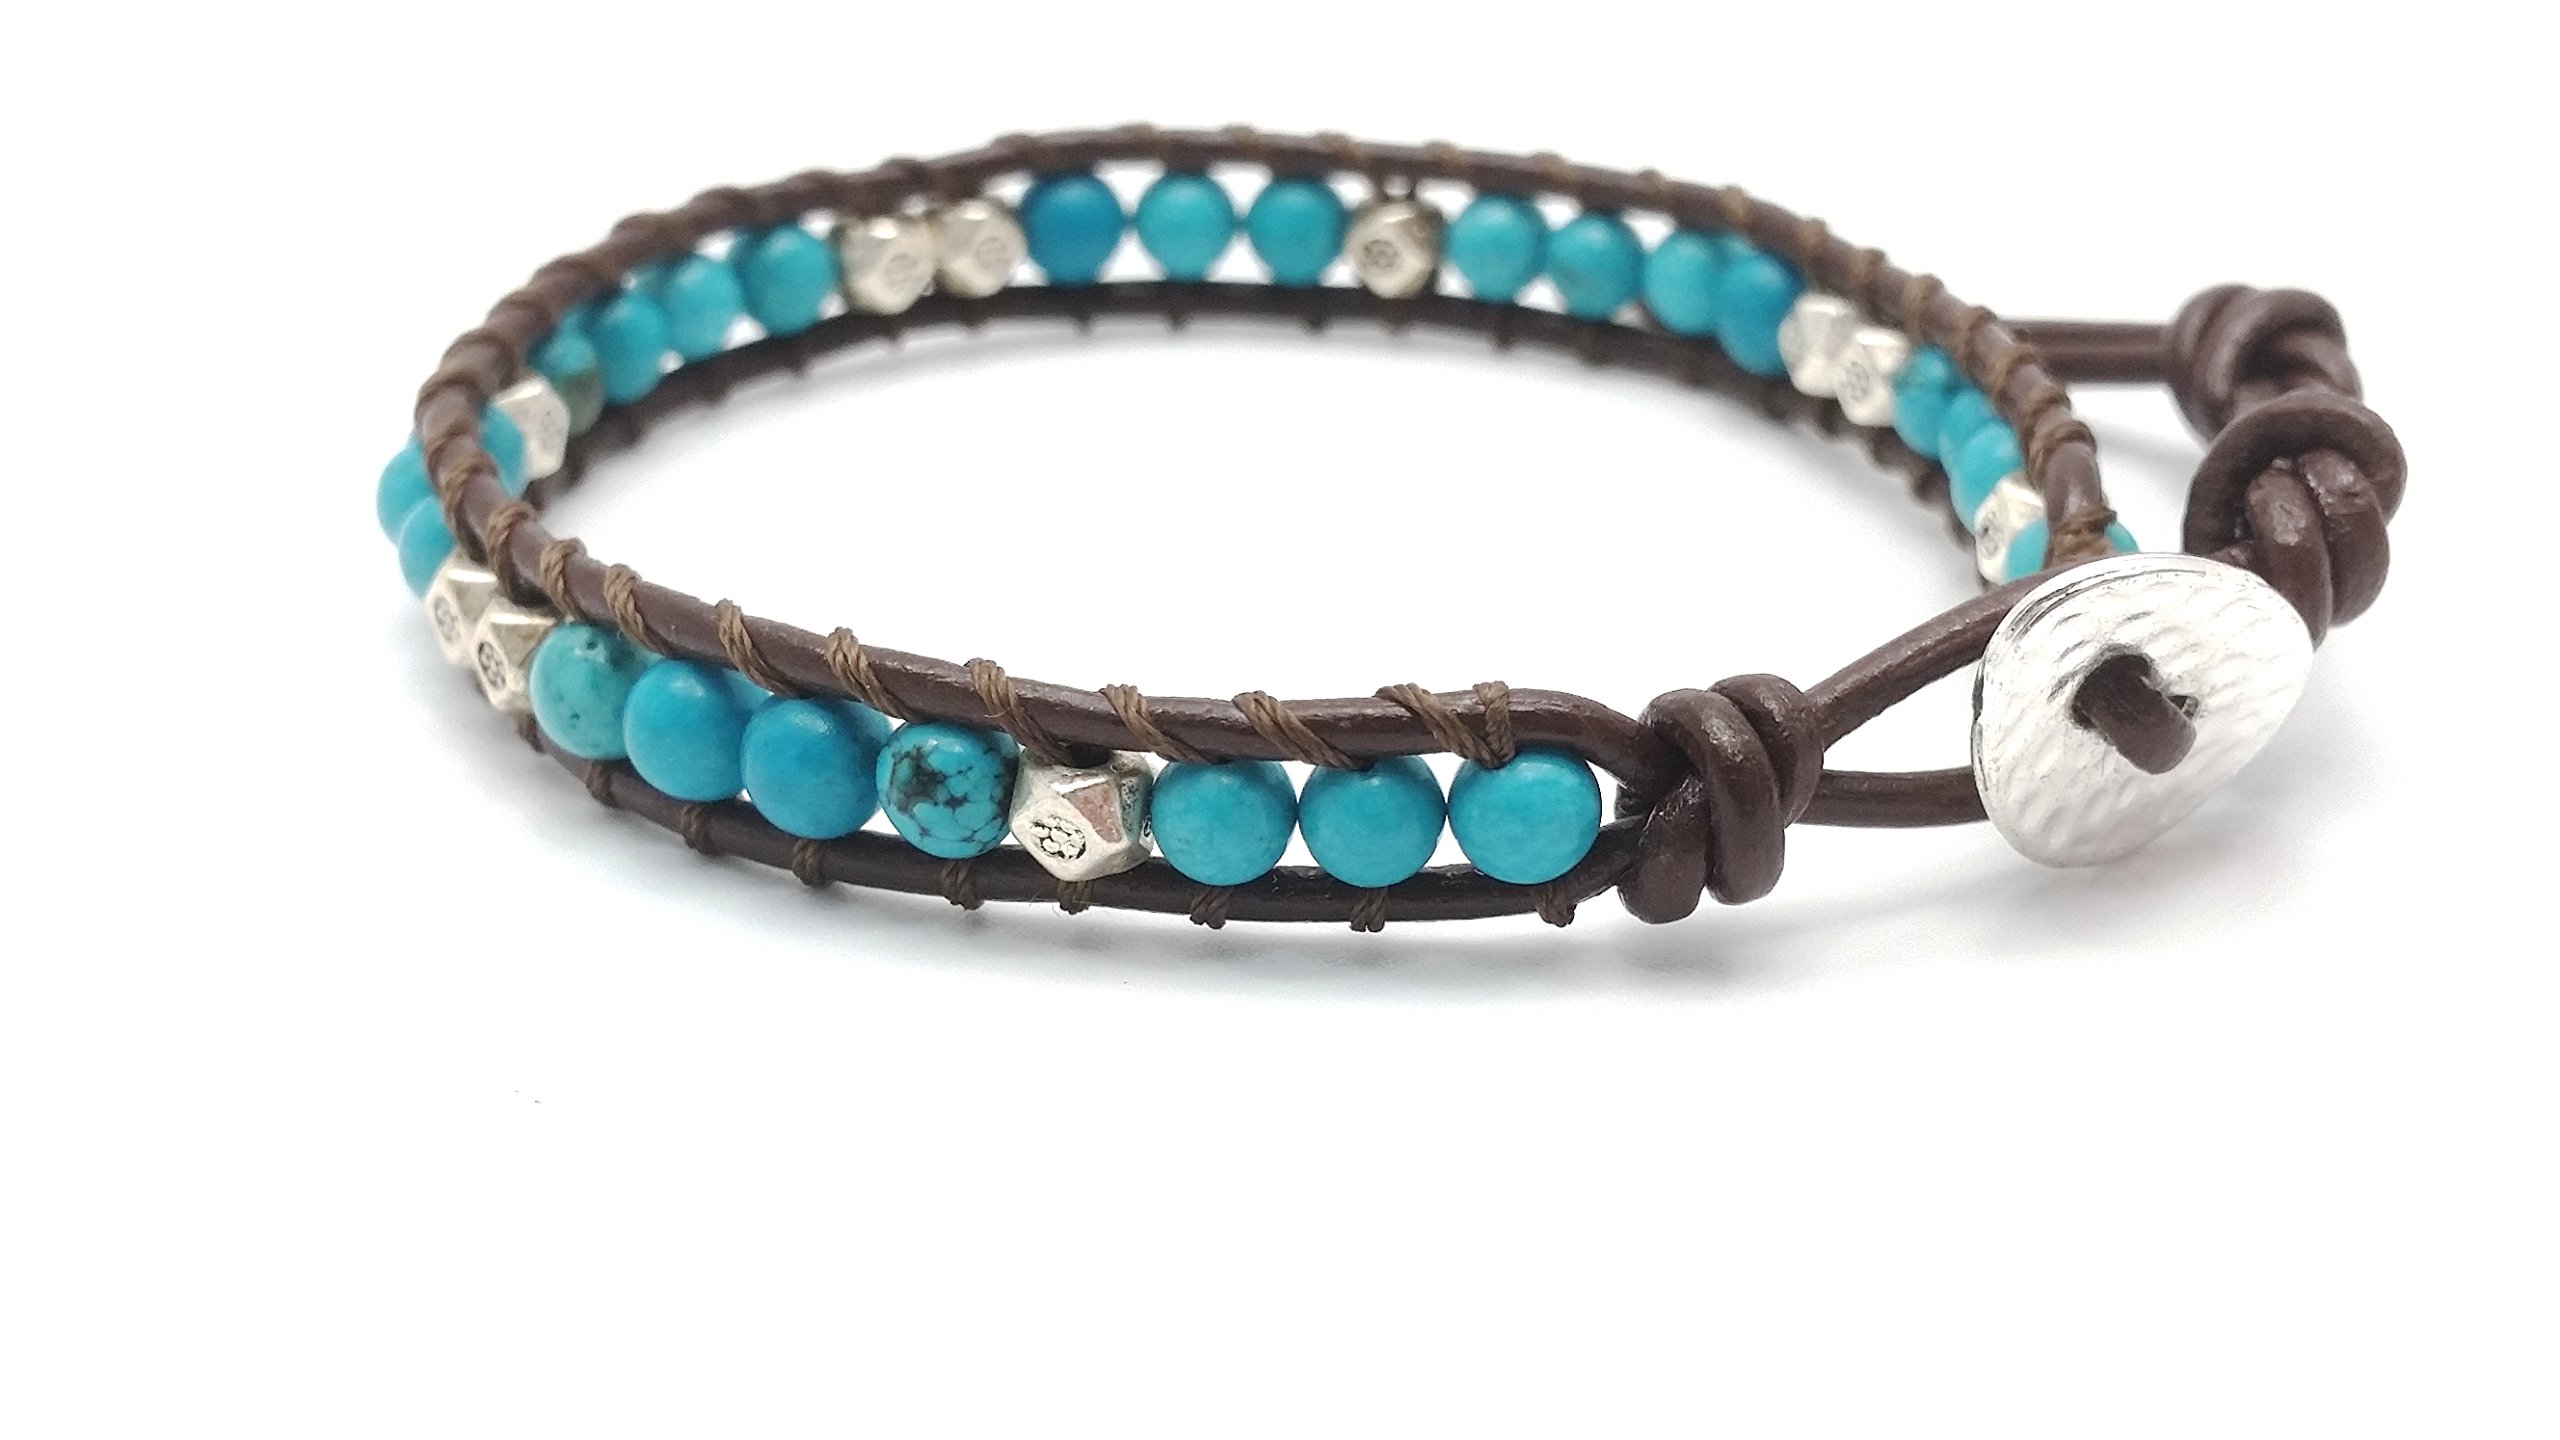 DEW Drops Reconstructed Turquoise and Silver beads Leather Wrap Bracelet, Single Wrap, 4mm/bead by DEW Drops (Image #4)